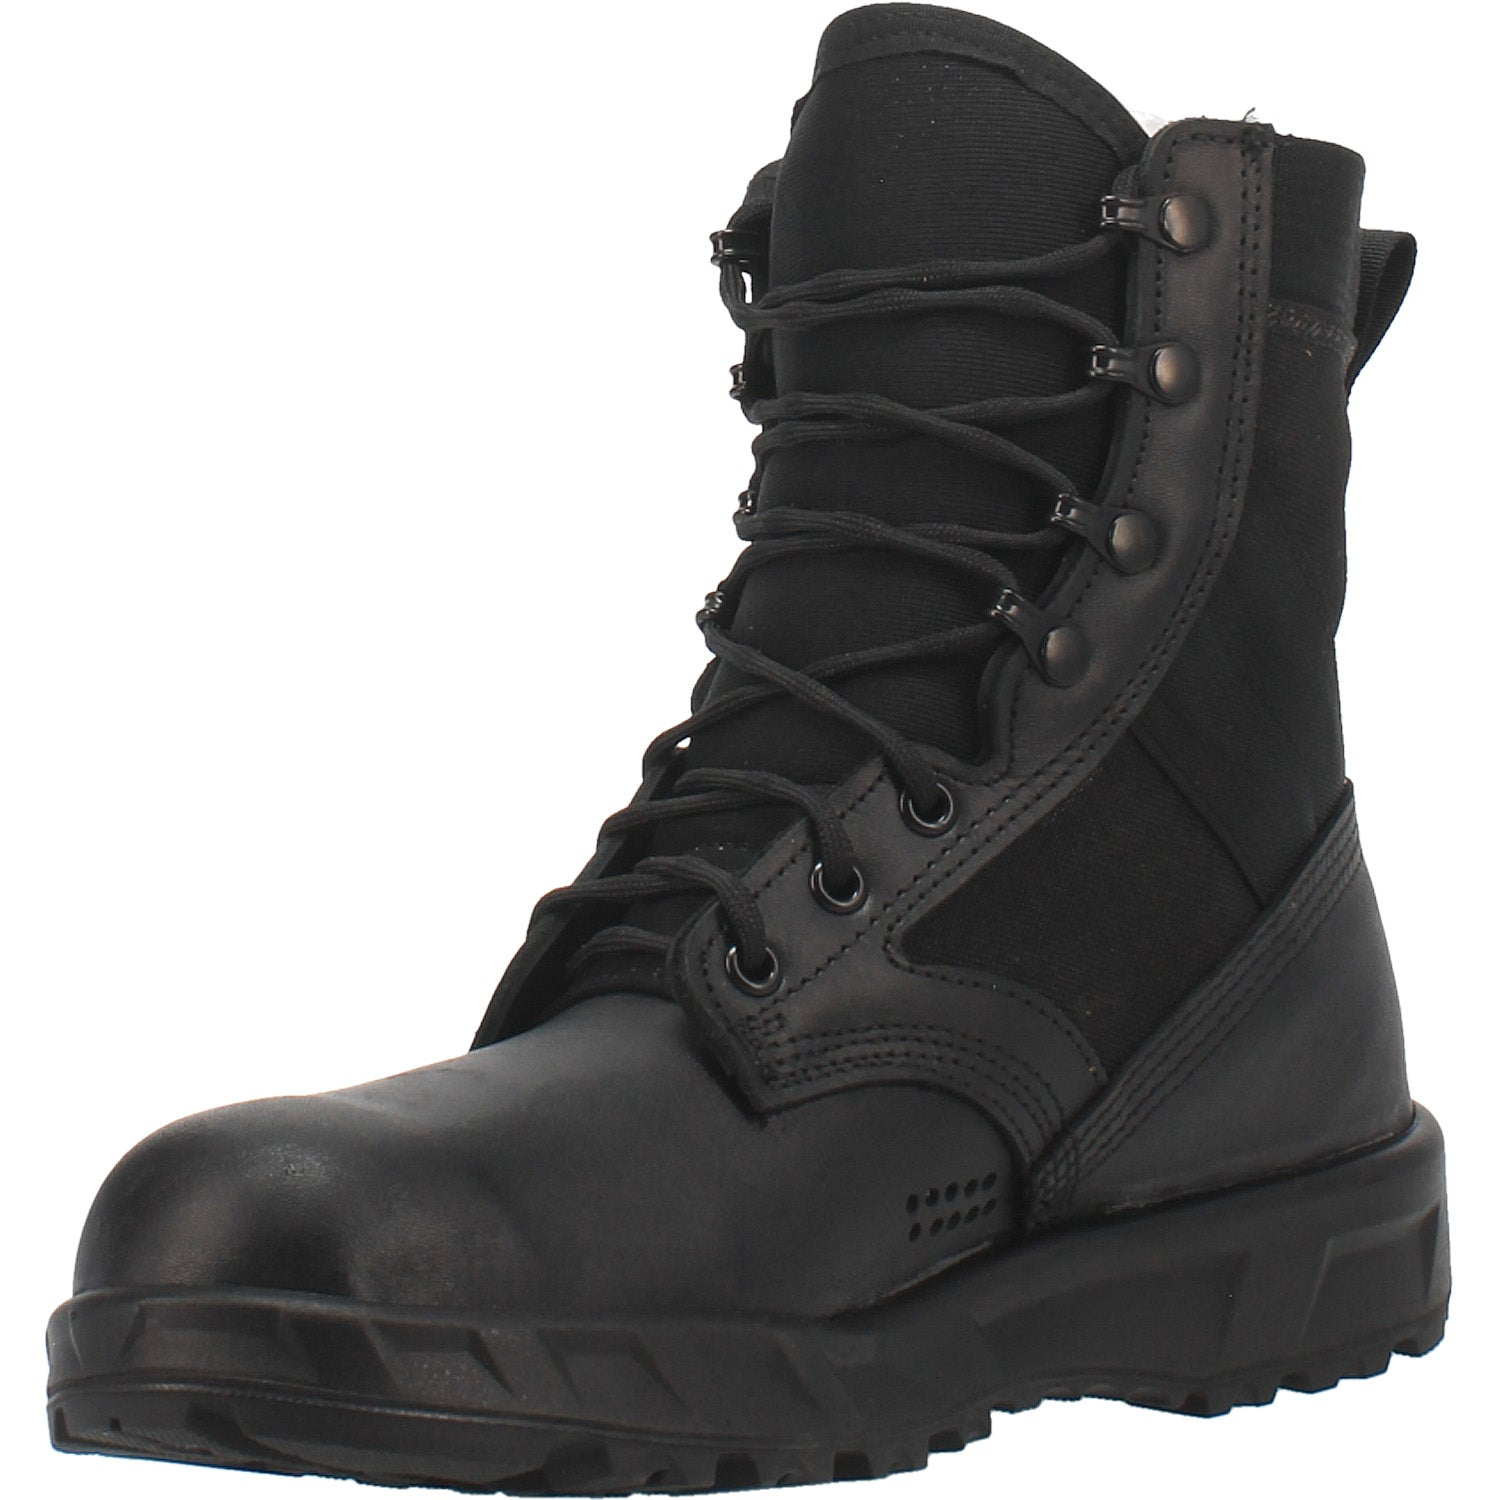 T2 Ultra Light Hot Weather Combat Boot 14940878503978